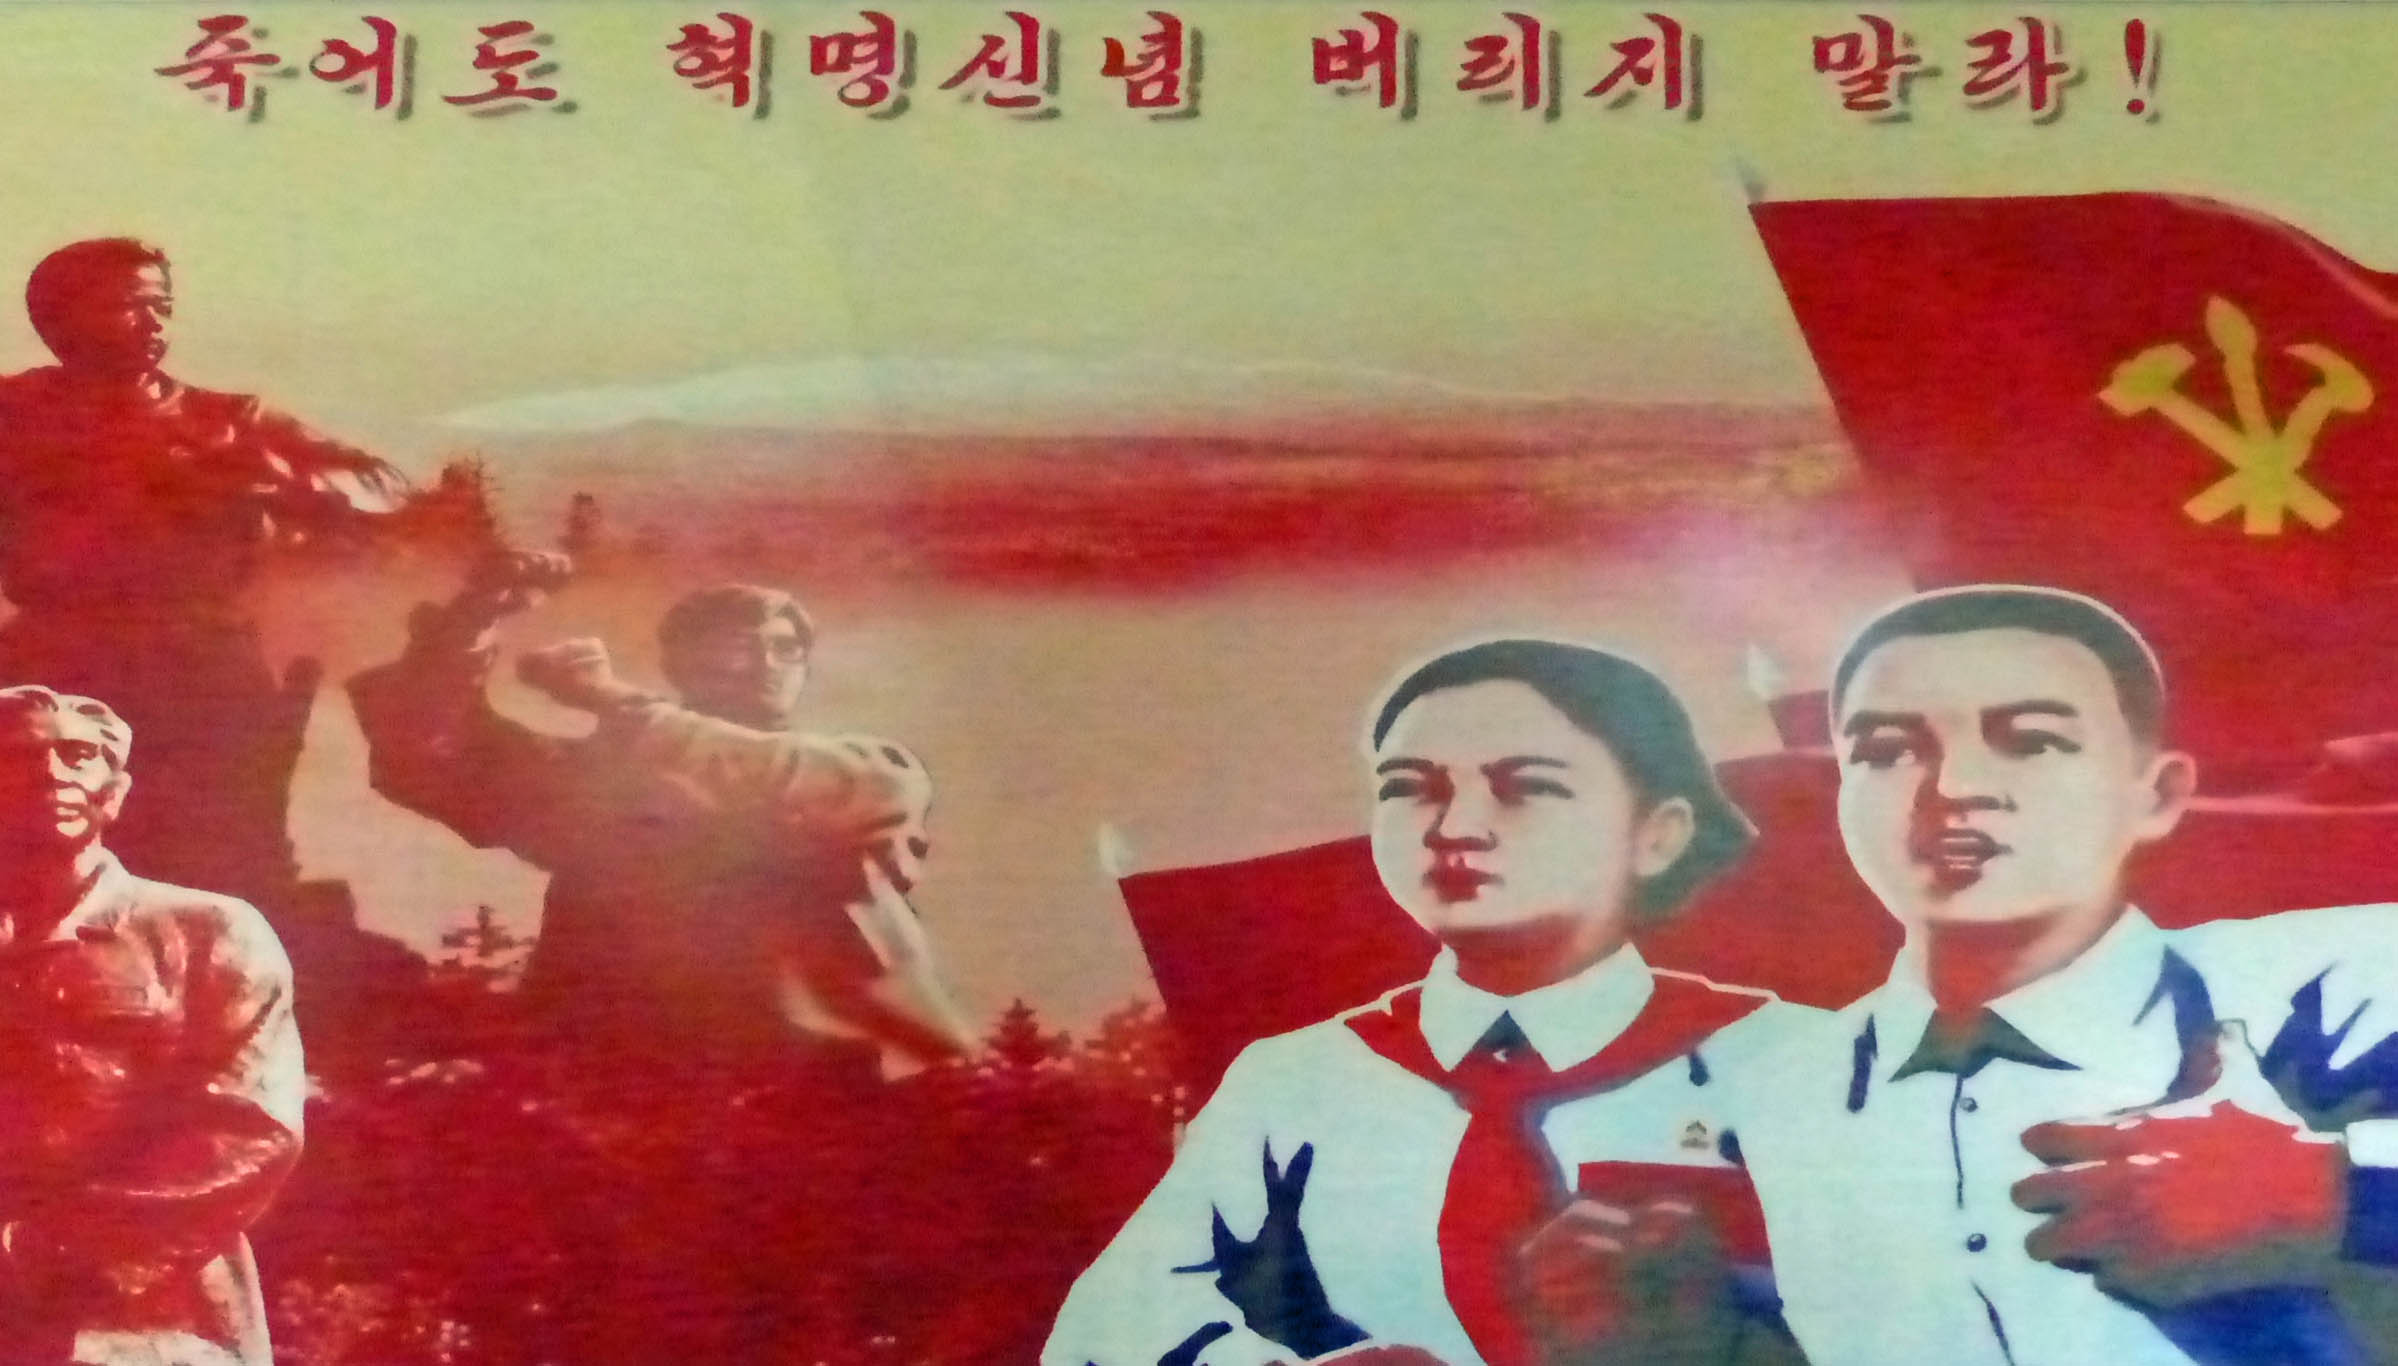 Propaganda poster with young people and red flag